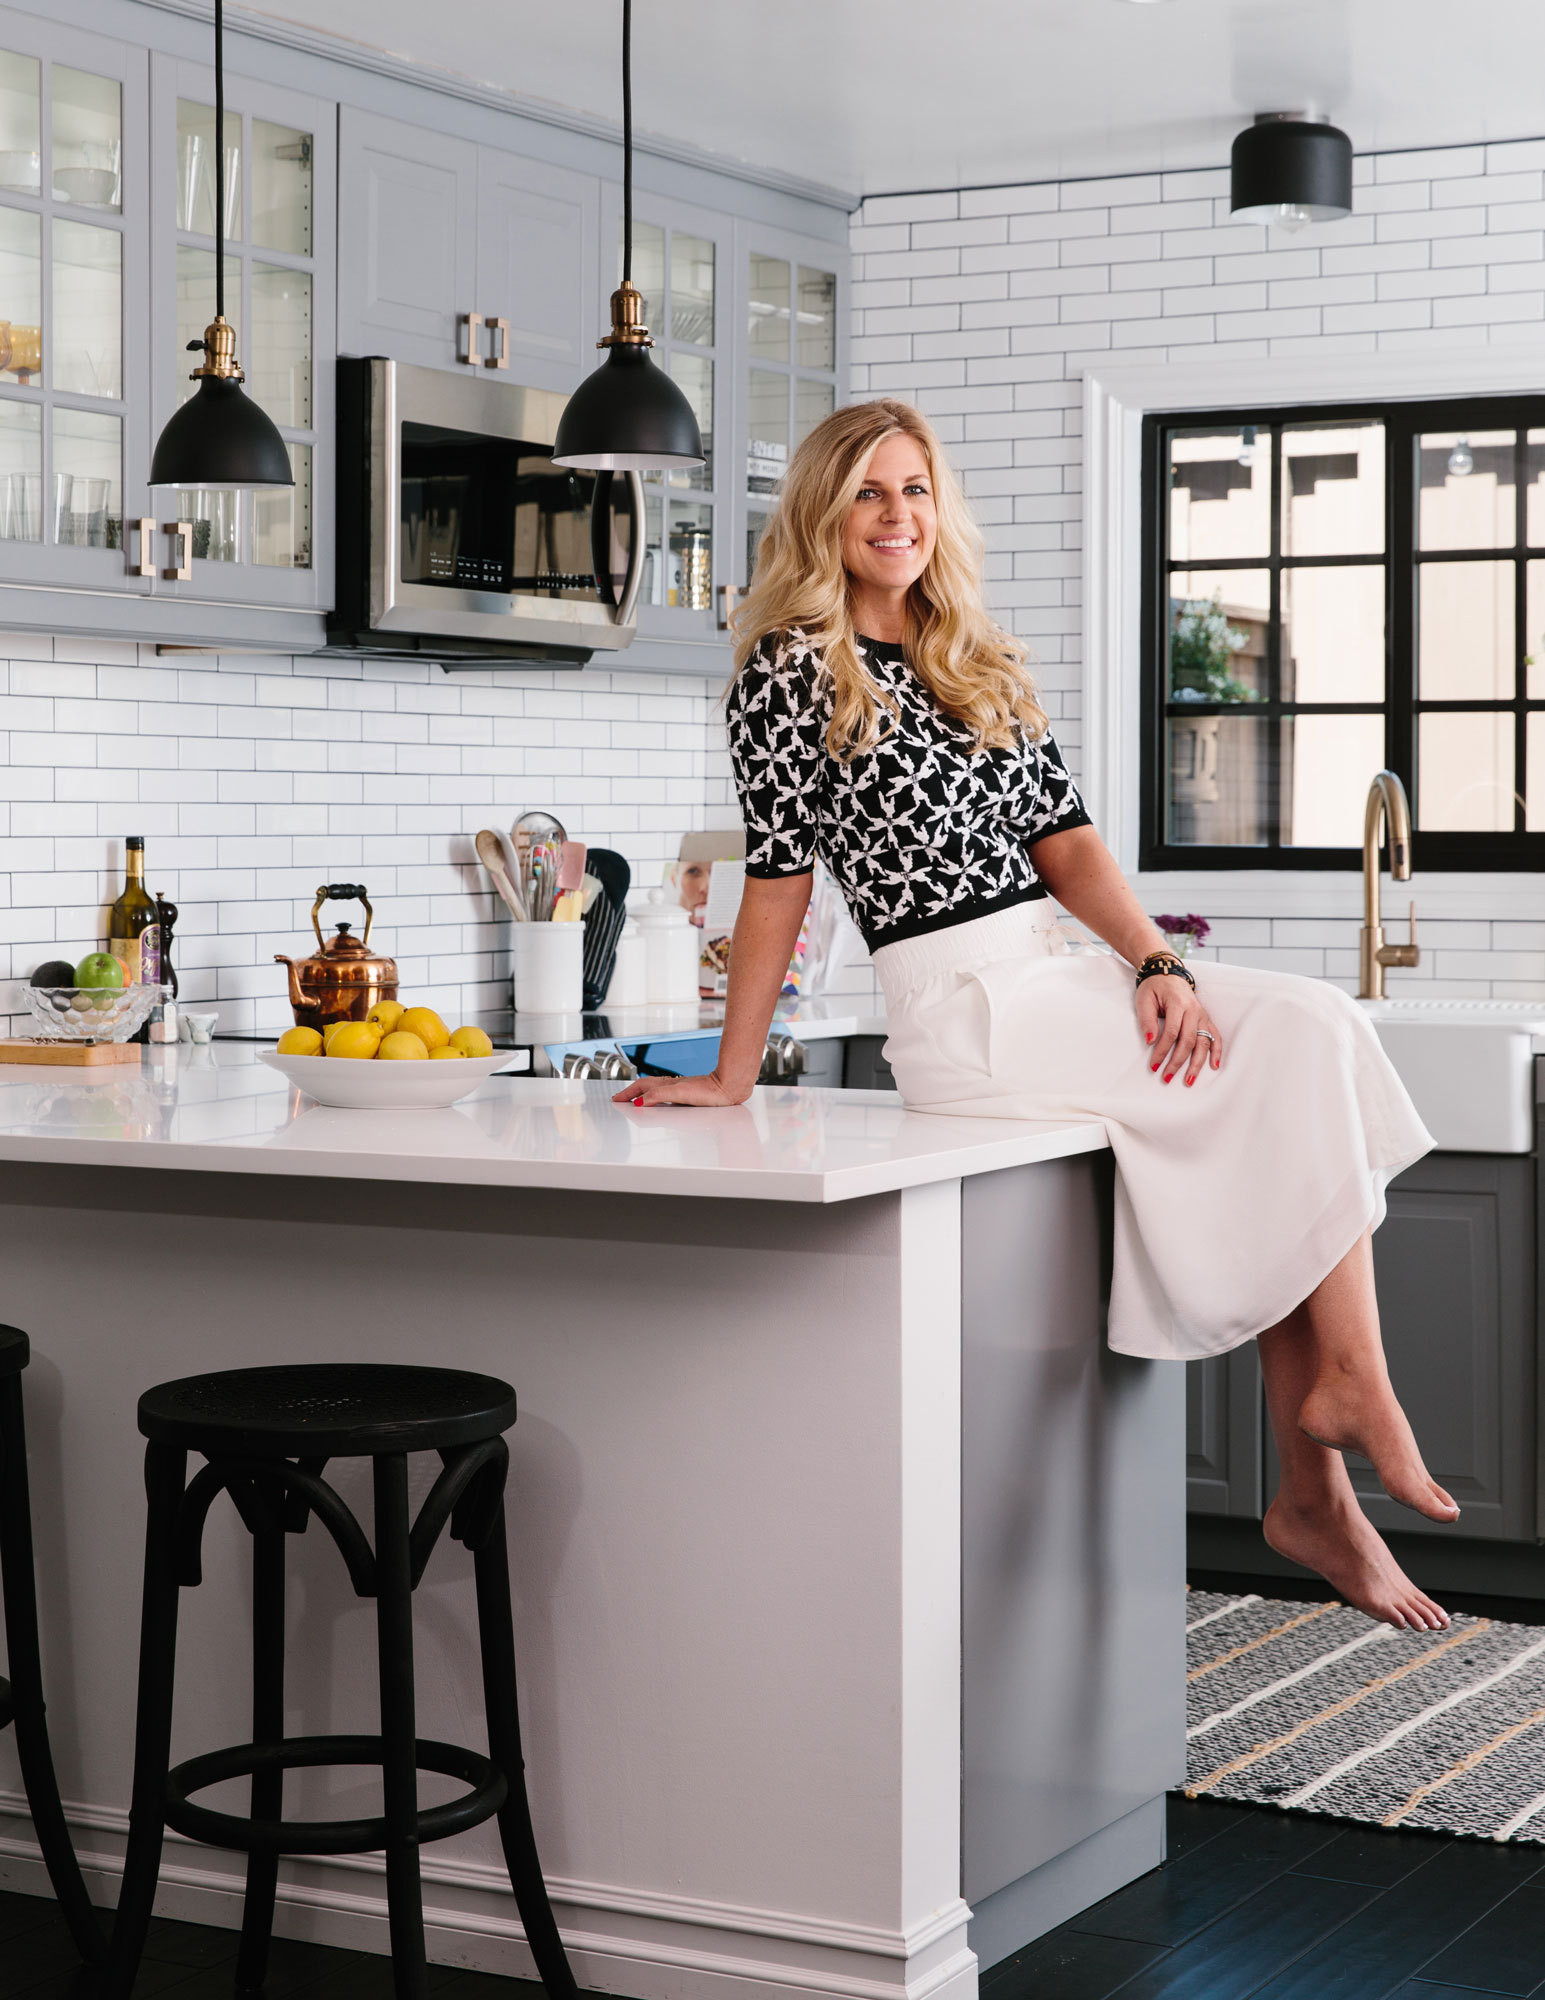 Schoneveld shows off her customized IKEA kitchen, which she upgraded with matte black light fixtures and brass hardware.